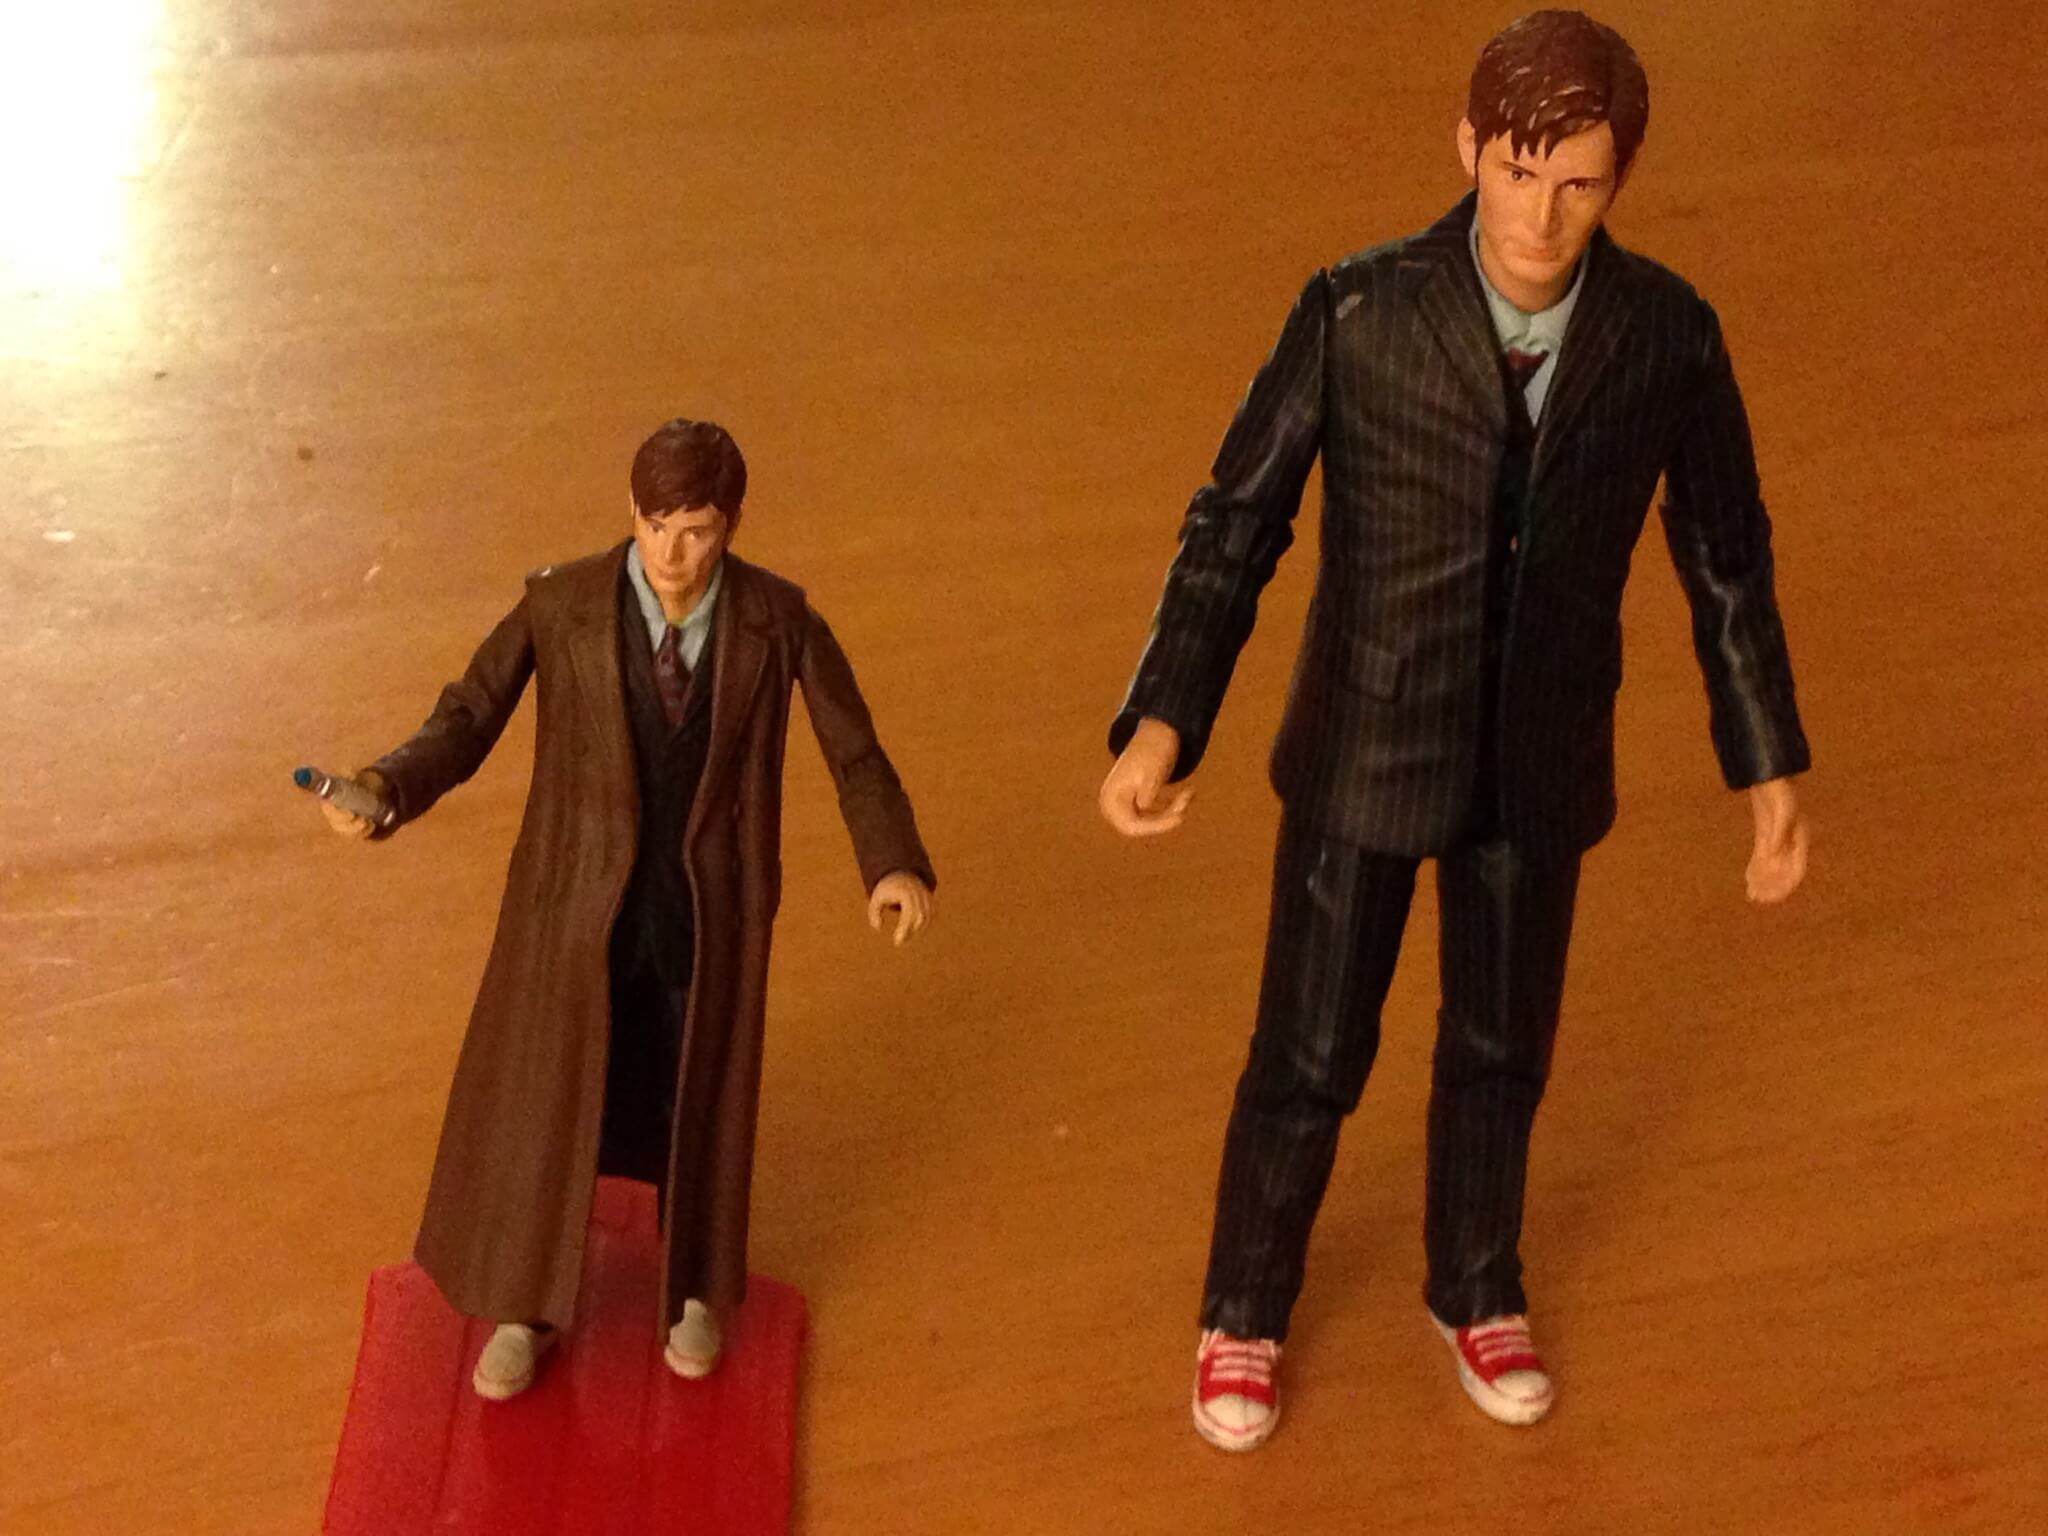 Comparison shot of 3 3/4 Doctor Who David Tennant figure and 5 inch Doctor Who David Tennant Figure